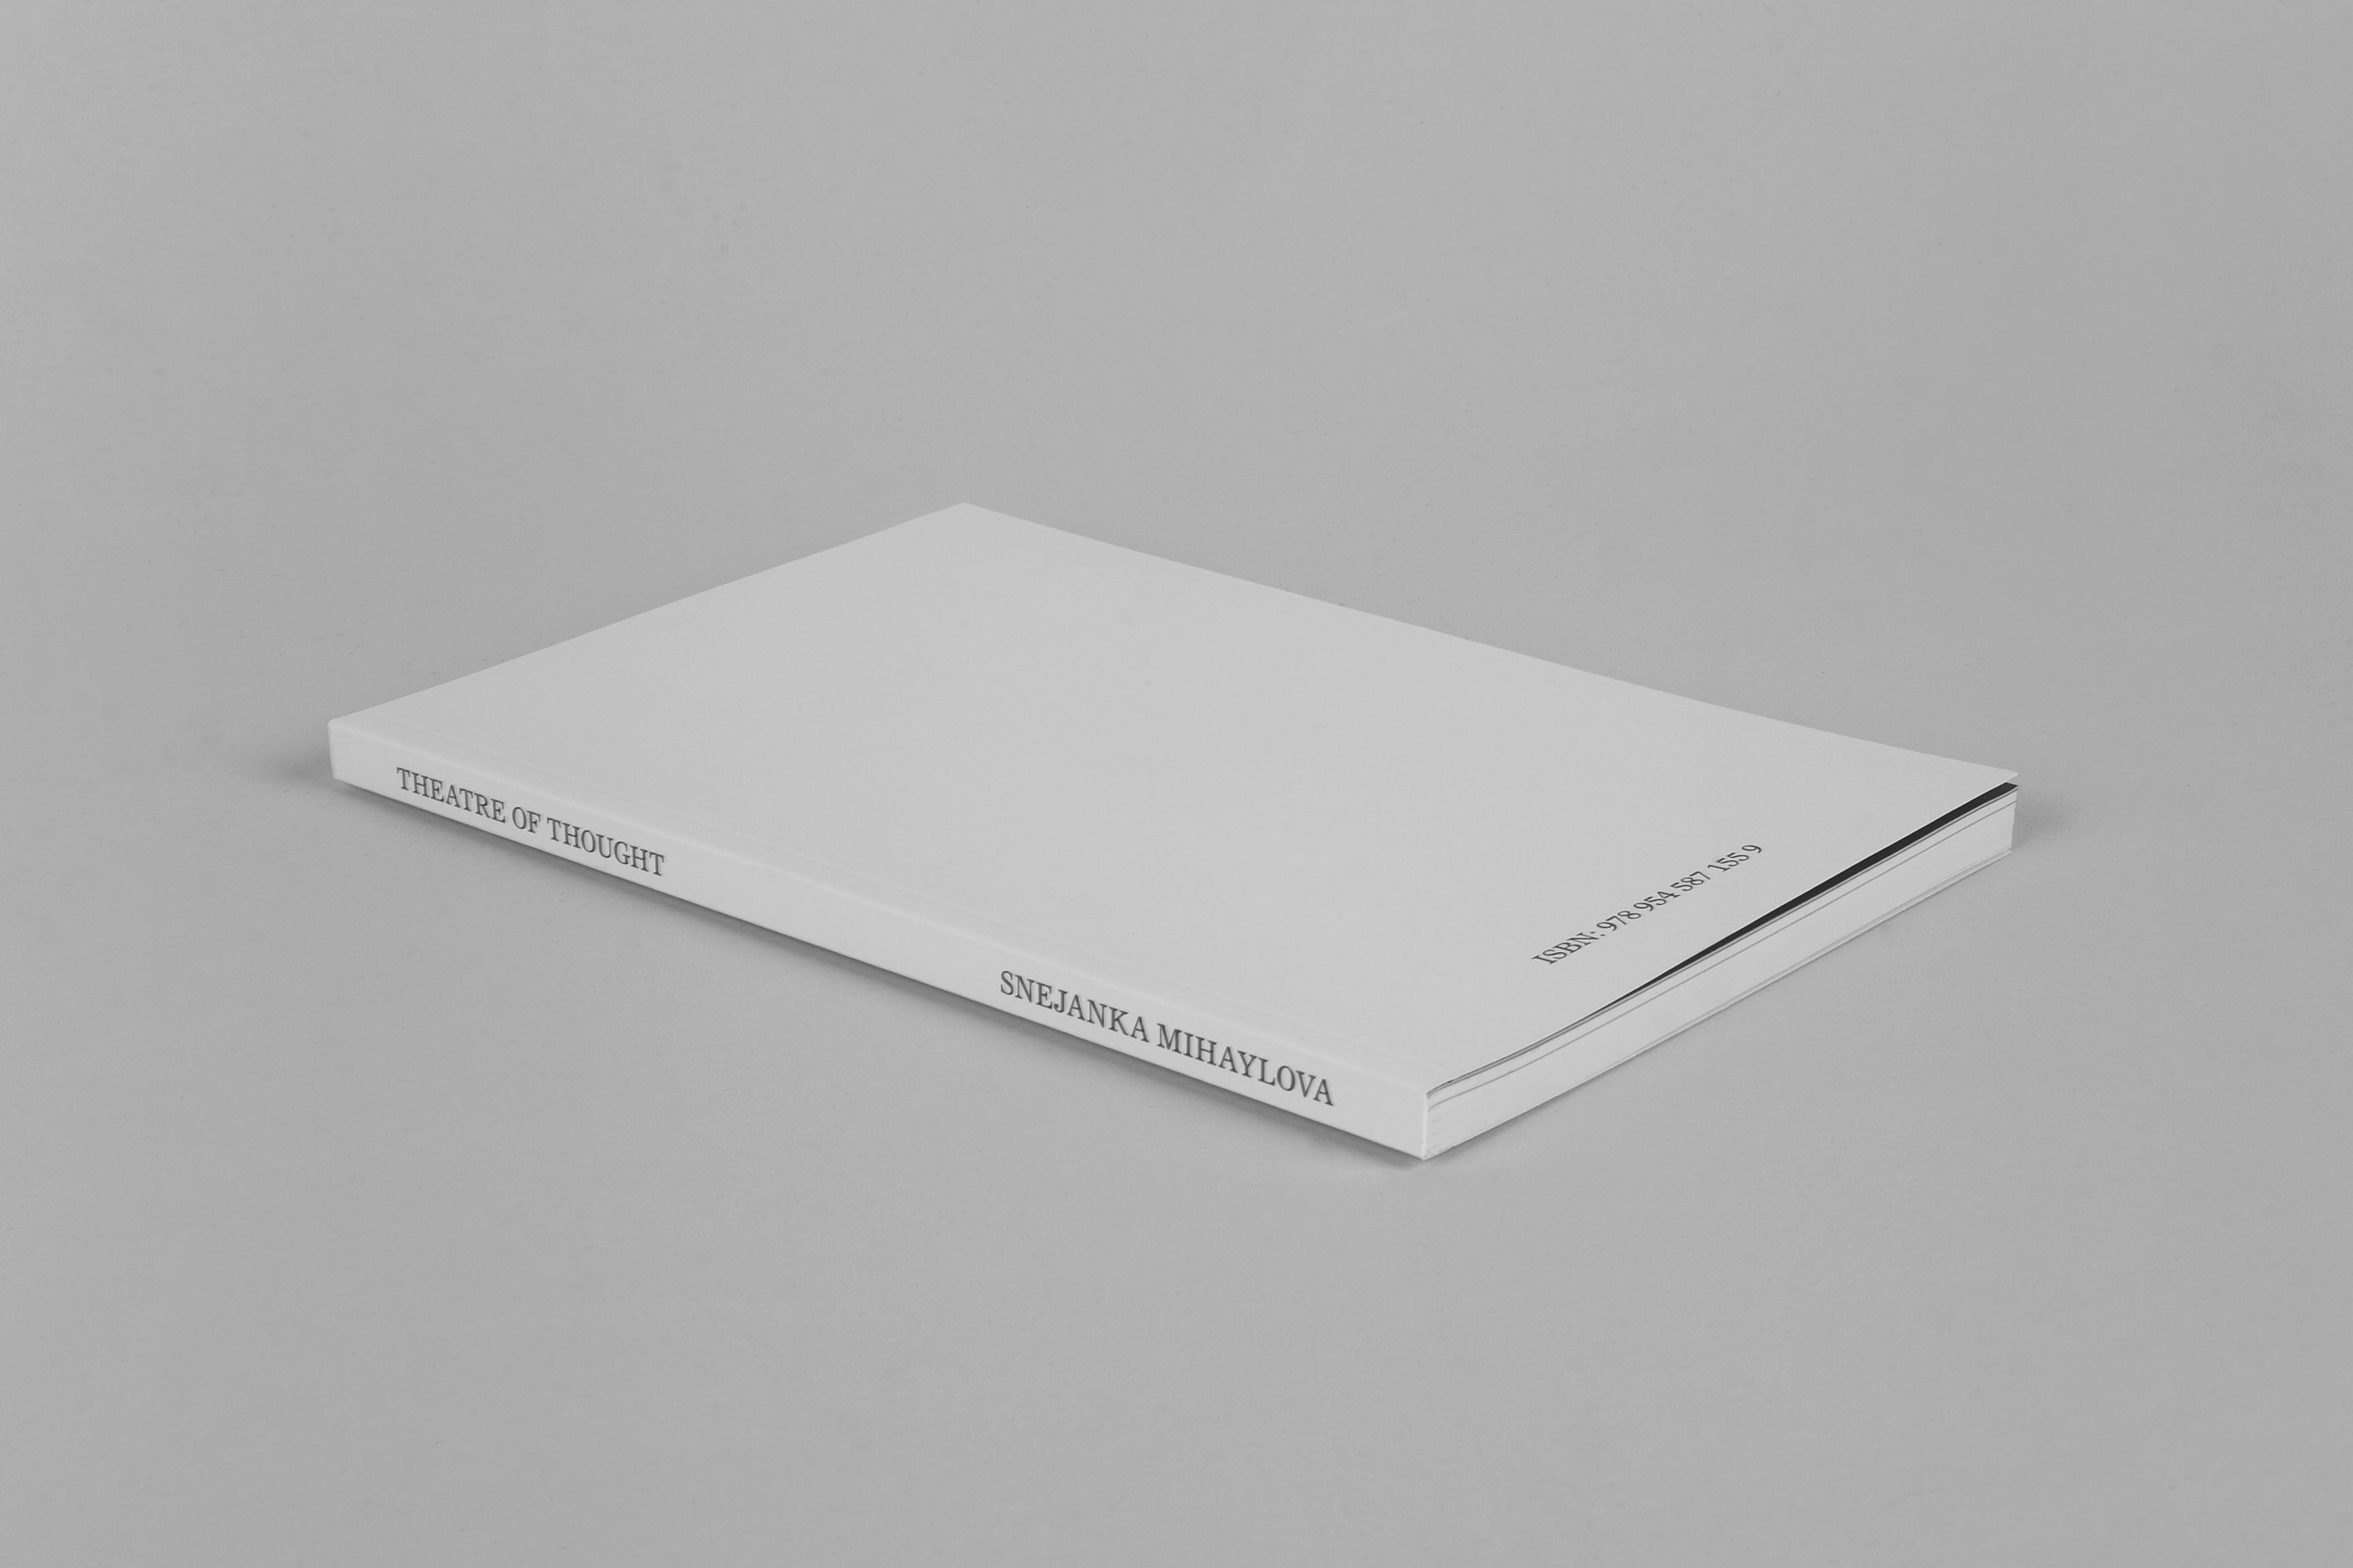 Theatre of thought book